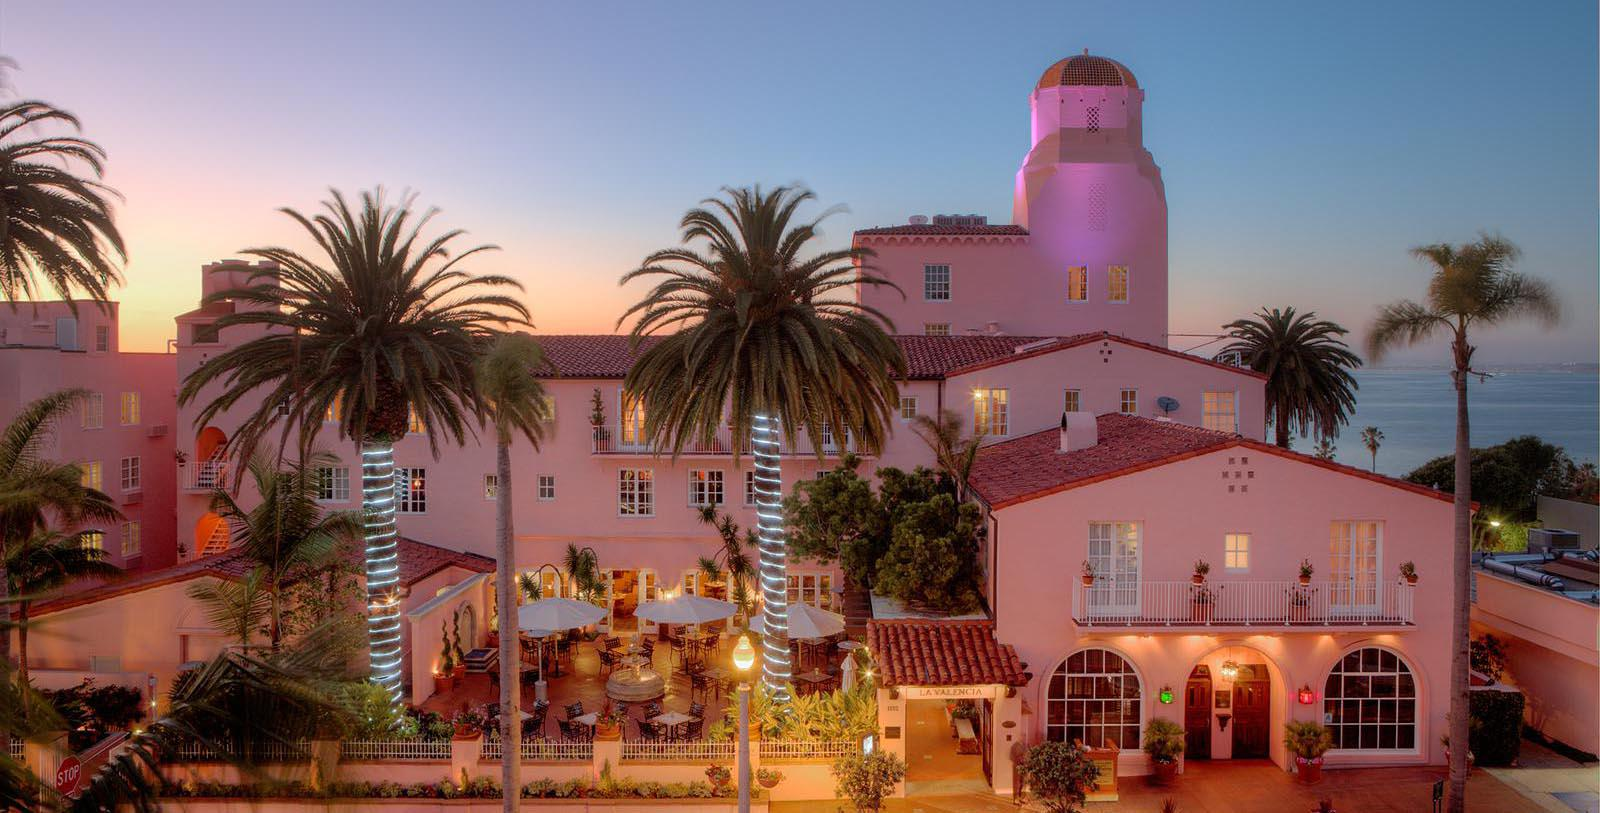 Image of Exterior at Night, La Valencia Hotel in La Jolla, Califronia, 1926, Member of Historic Hotels of America, Special Offers, Discounted Rates, Families, Romantic Escape, Honeymoons, Anniversaries, Reunions